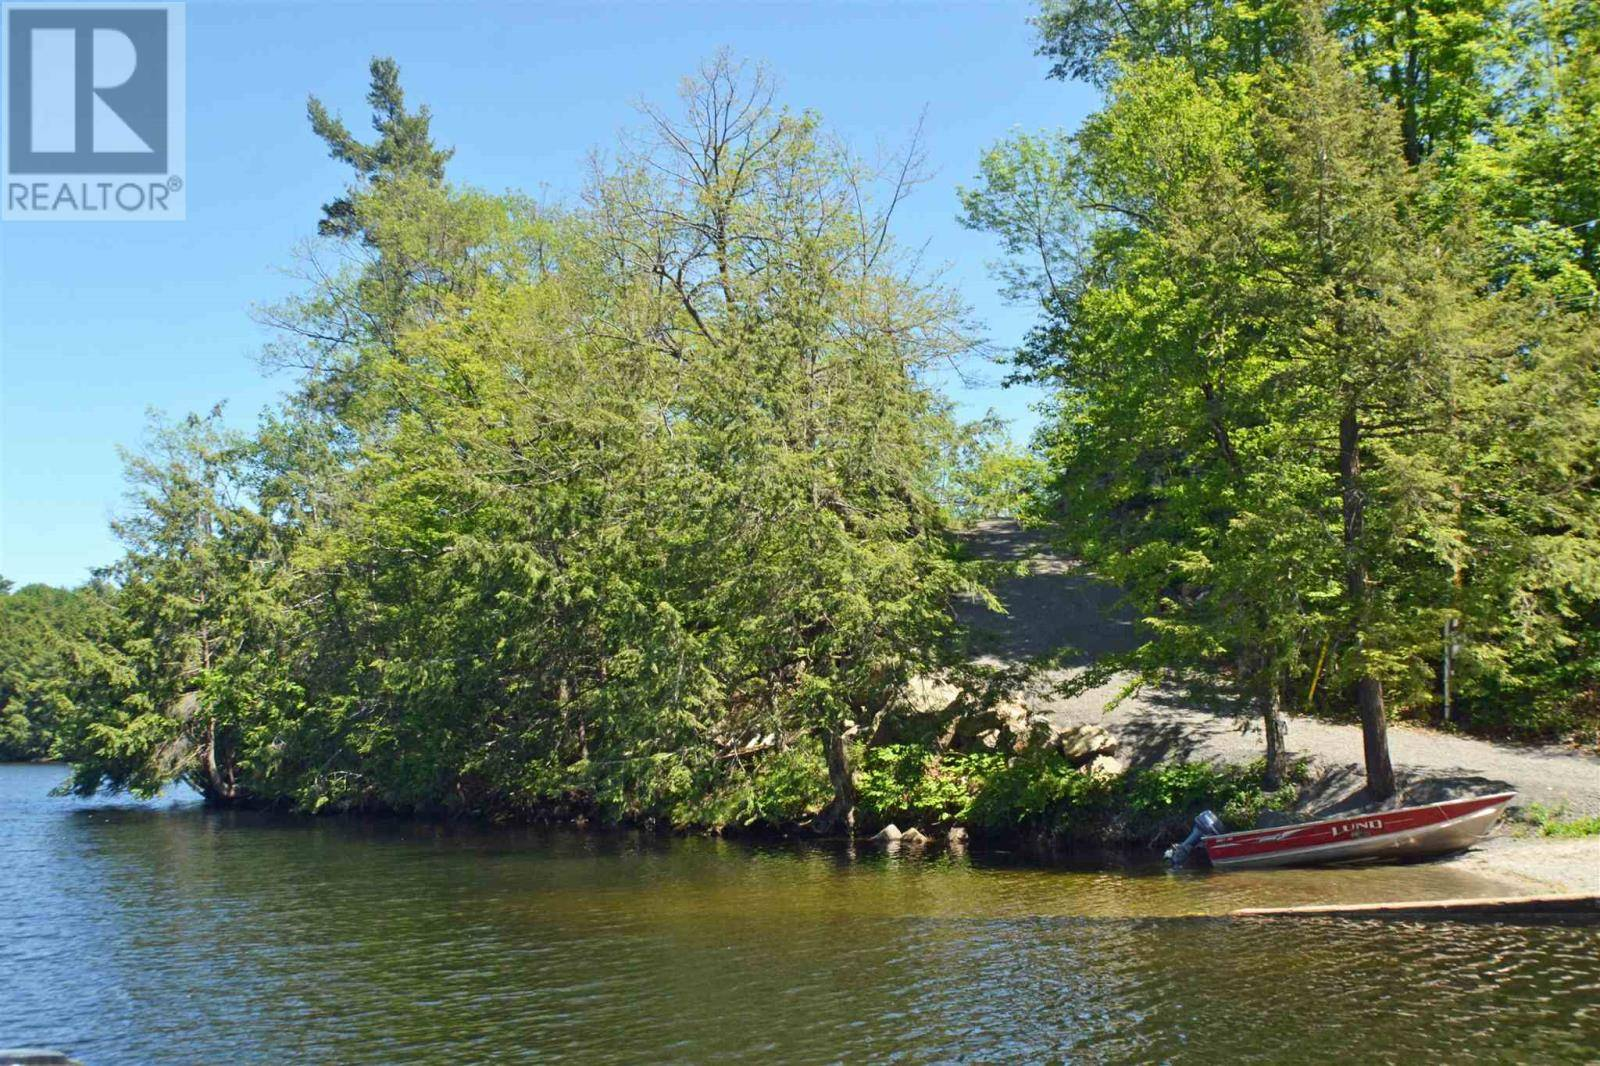 Residential property for sale at 26 Marina Ln South Frontenac Ontario - MLS: K19006650a